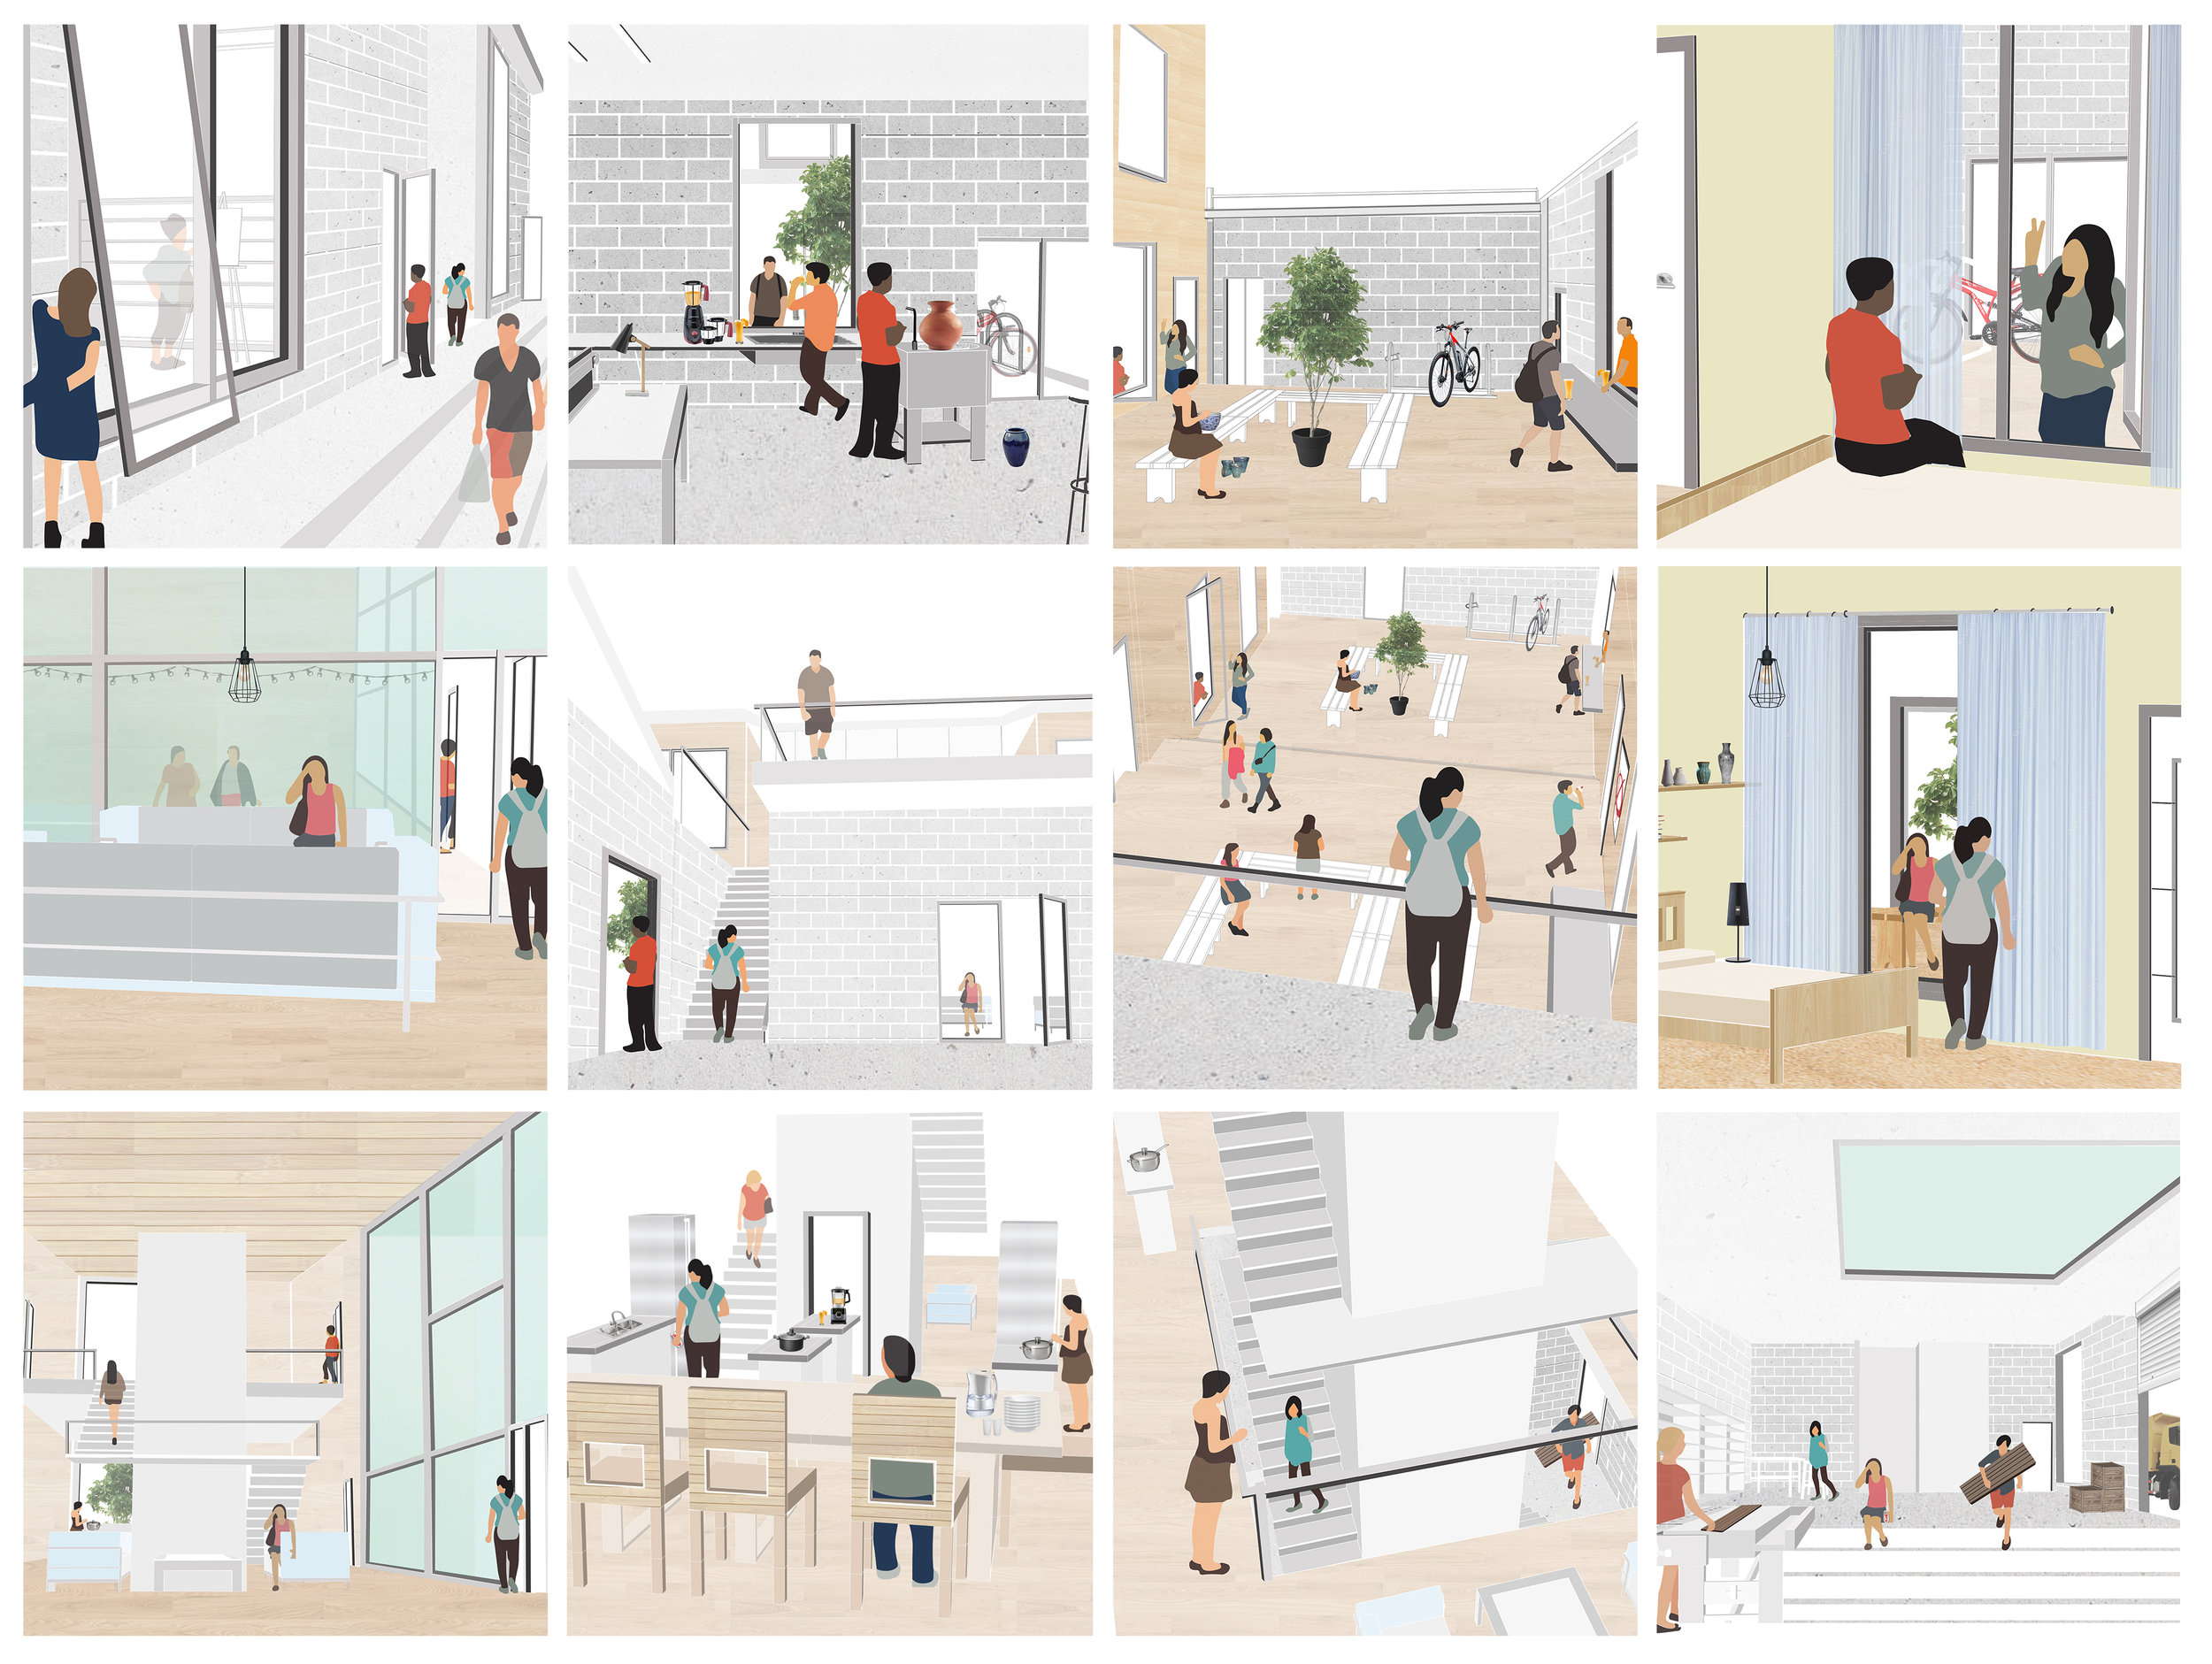 Sequential vignettes showing movement of two characters, as they navigate from the maker spaces to their residential, more private spaces.